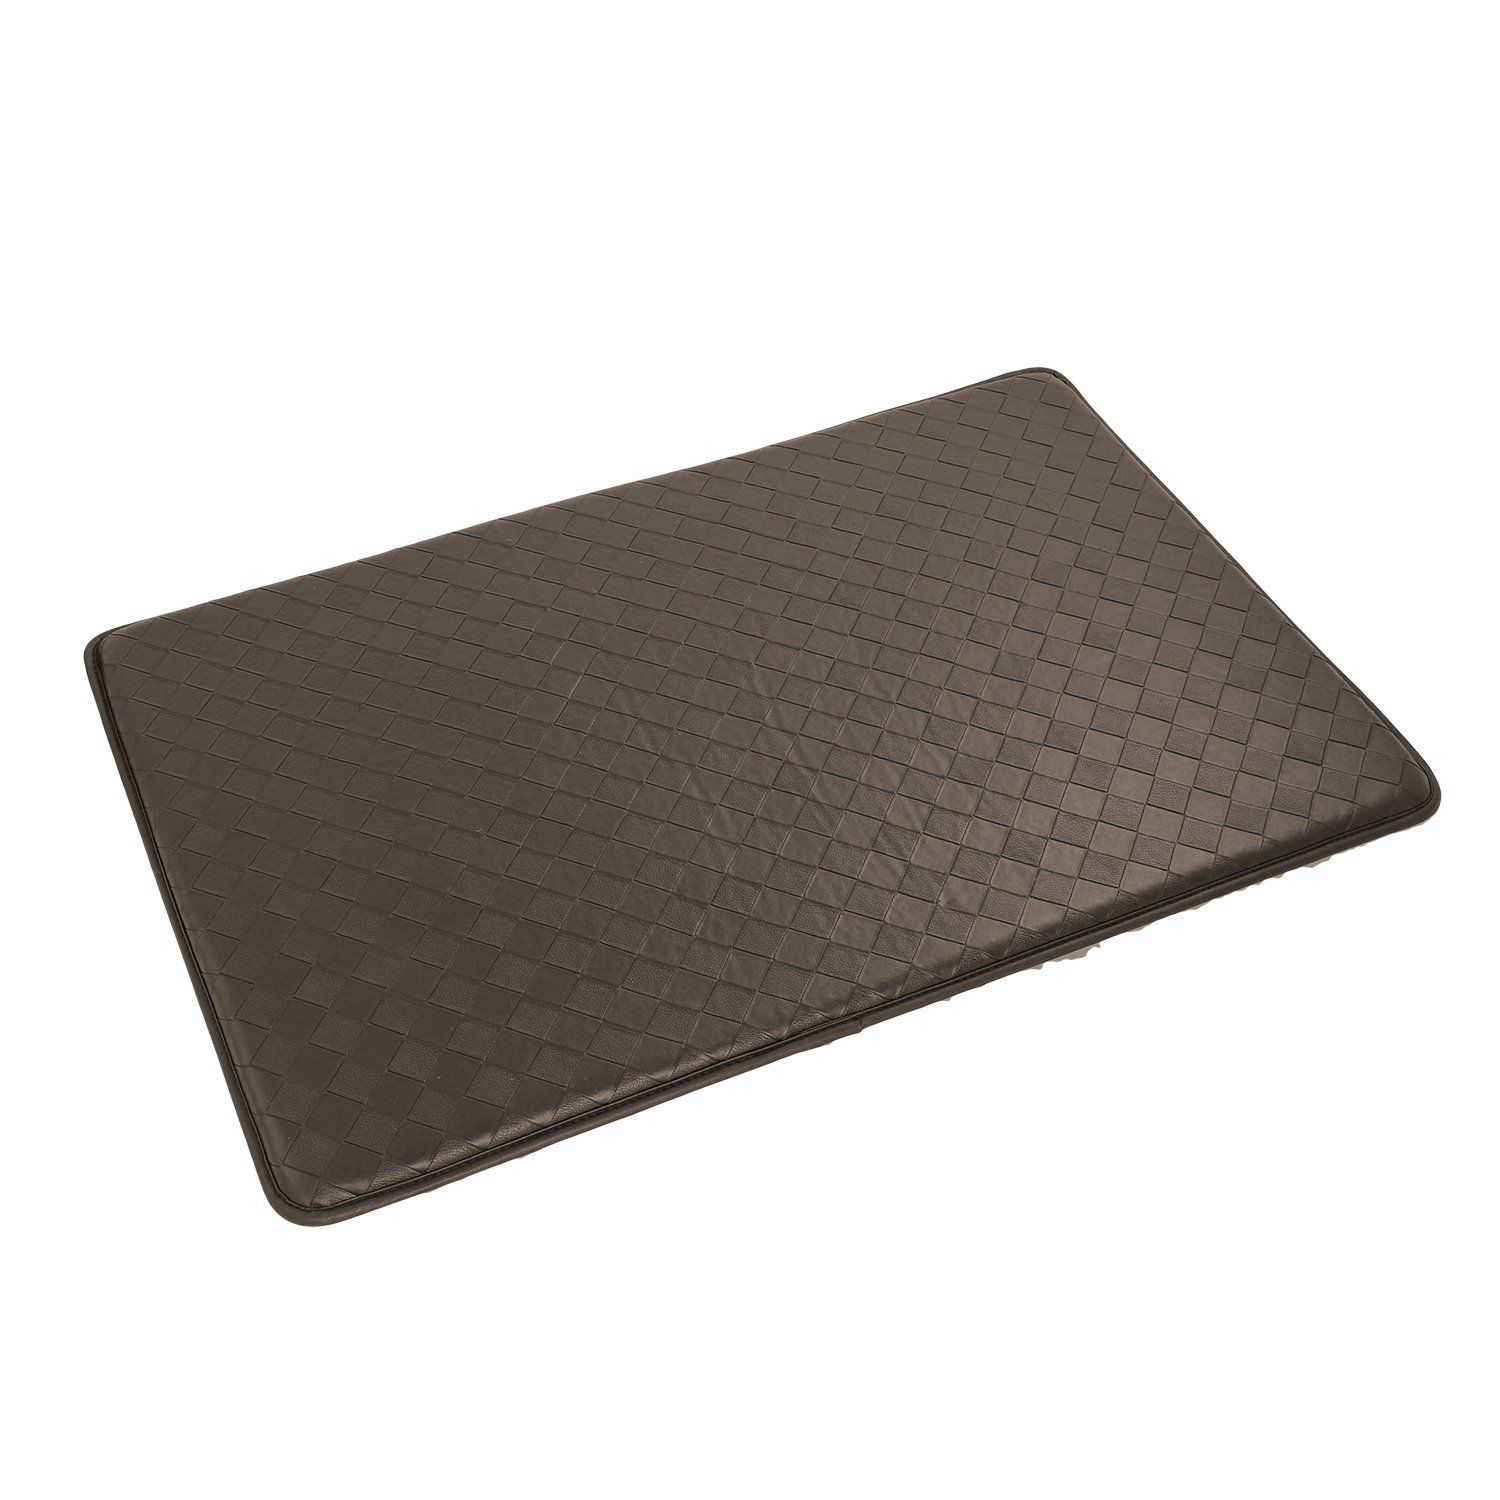 com furniture and personalized foam cozy beautiful memory kristilei marvelous table kitchen also floor mats dining mat colors amazon